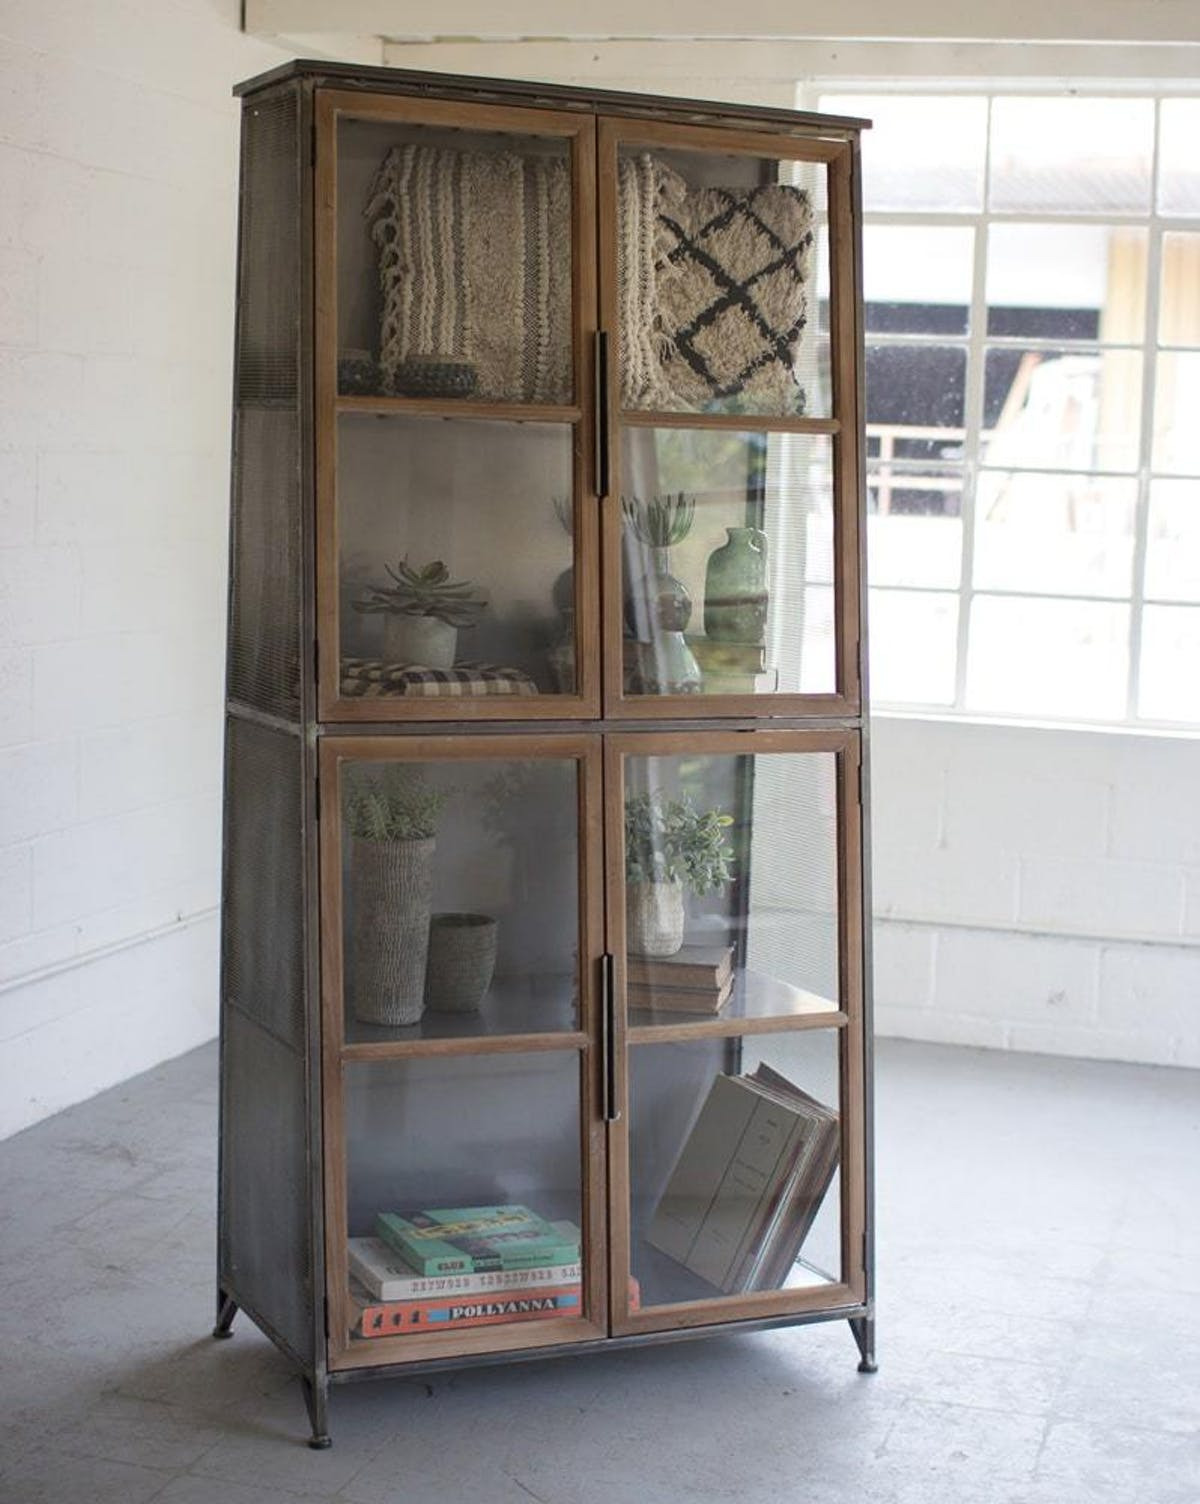 CLL2219 Kalalou Metal Wood Slanted Display Cabinet With Glass Doors